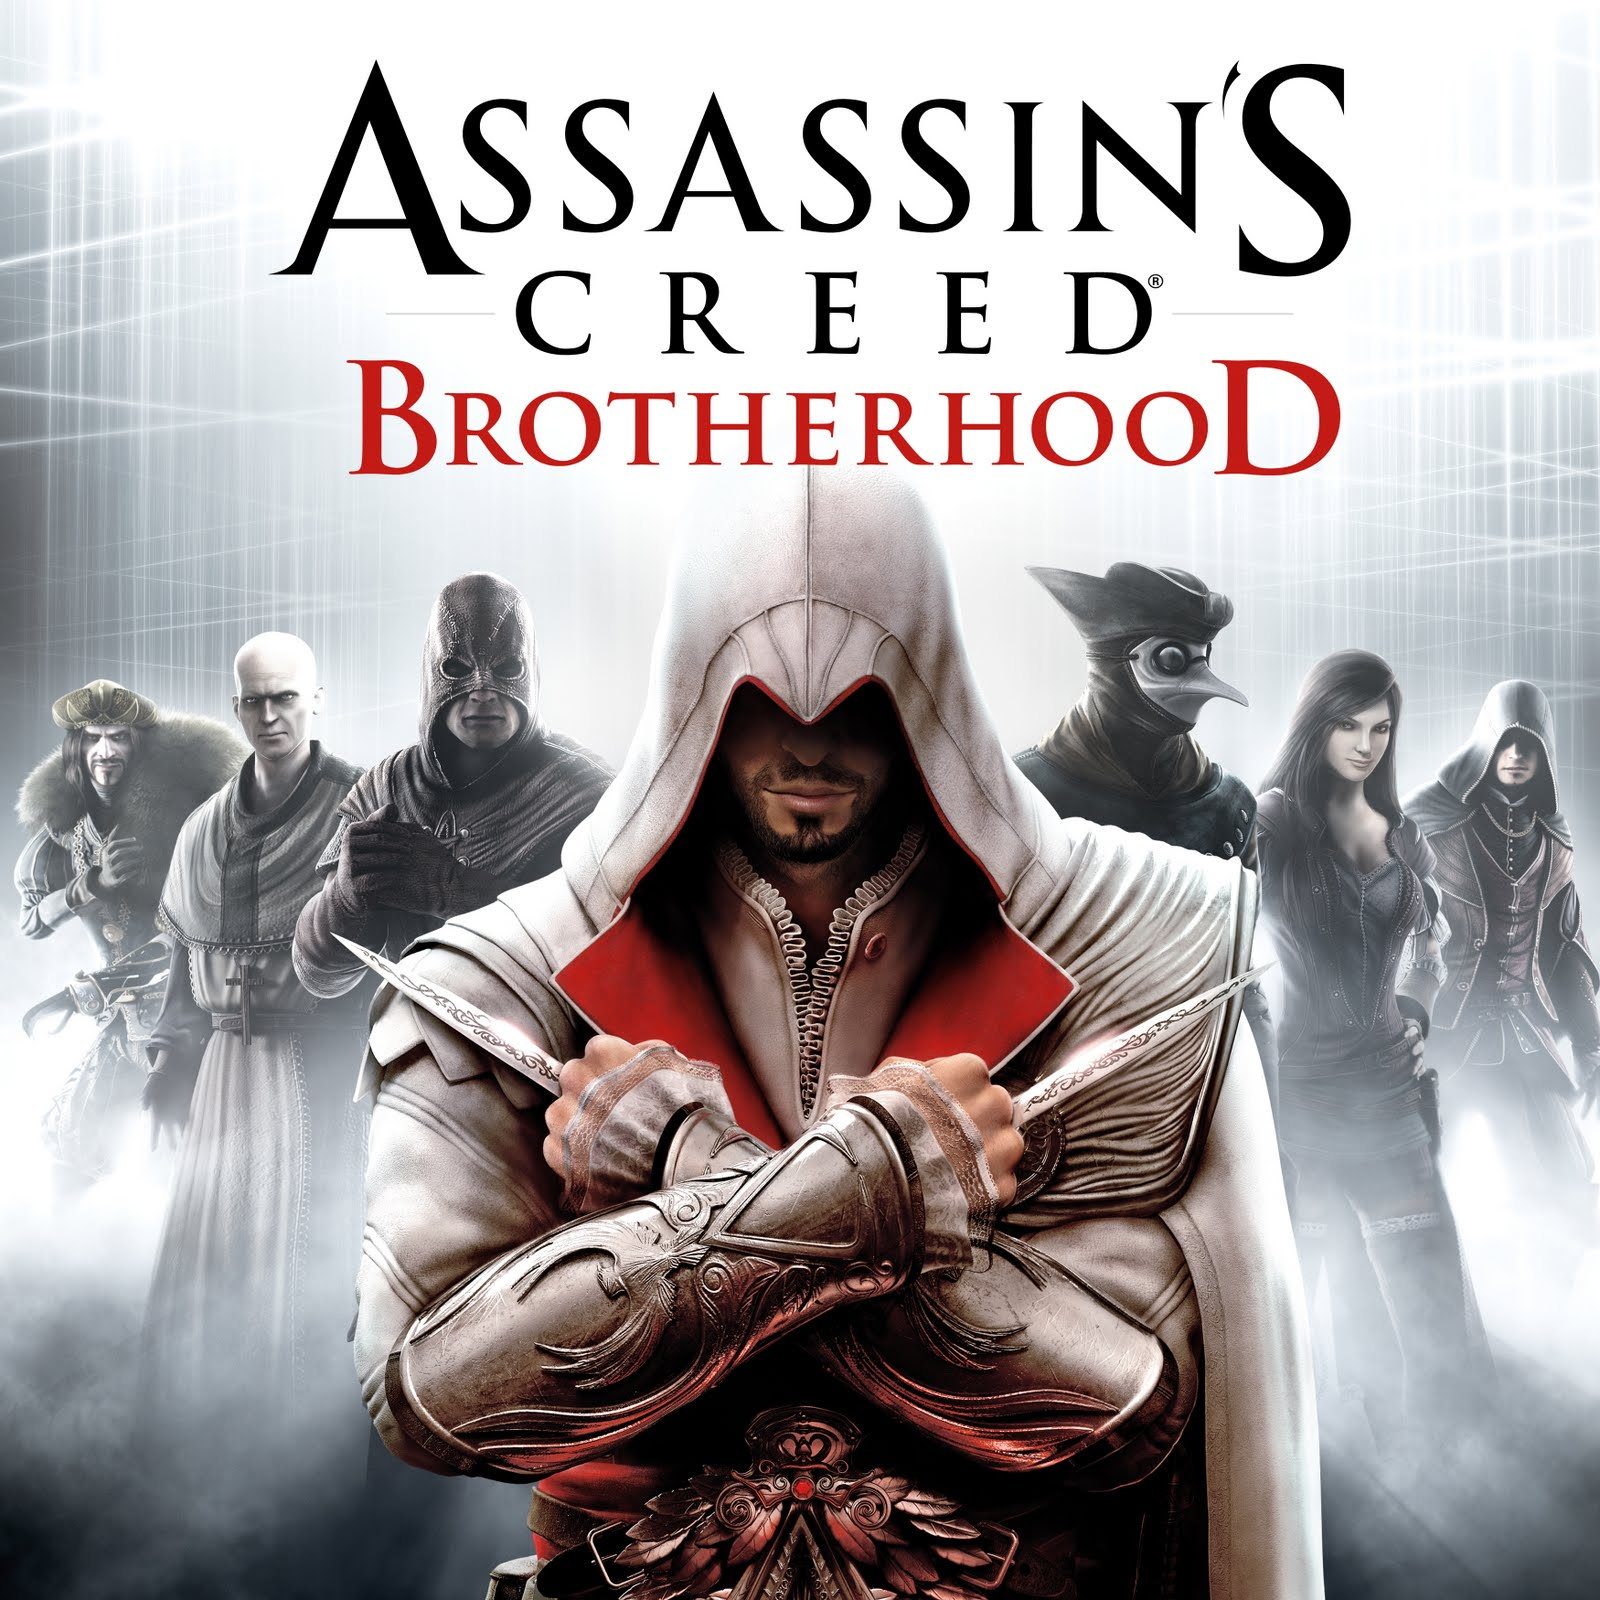 Free Download Assassin's Creed Brotherhood Games Full Version For